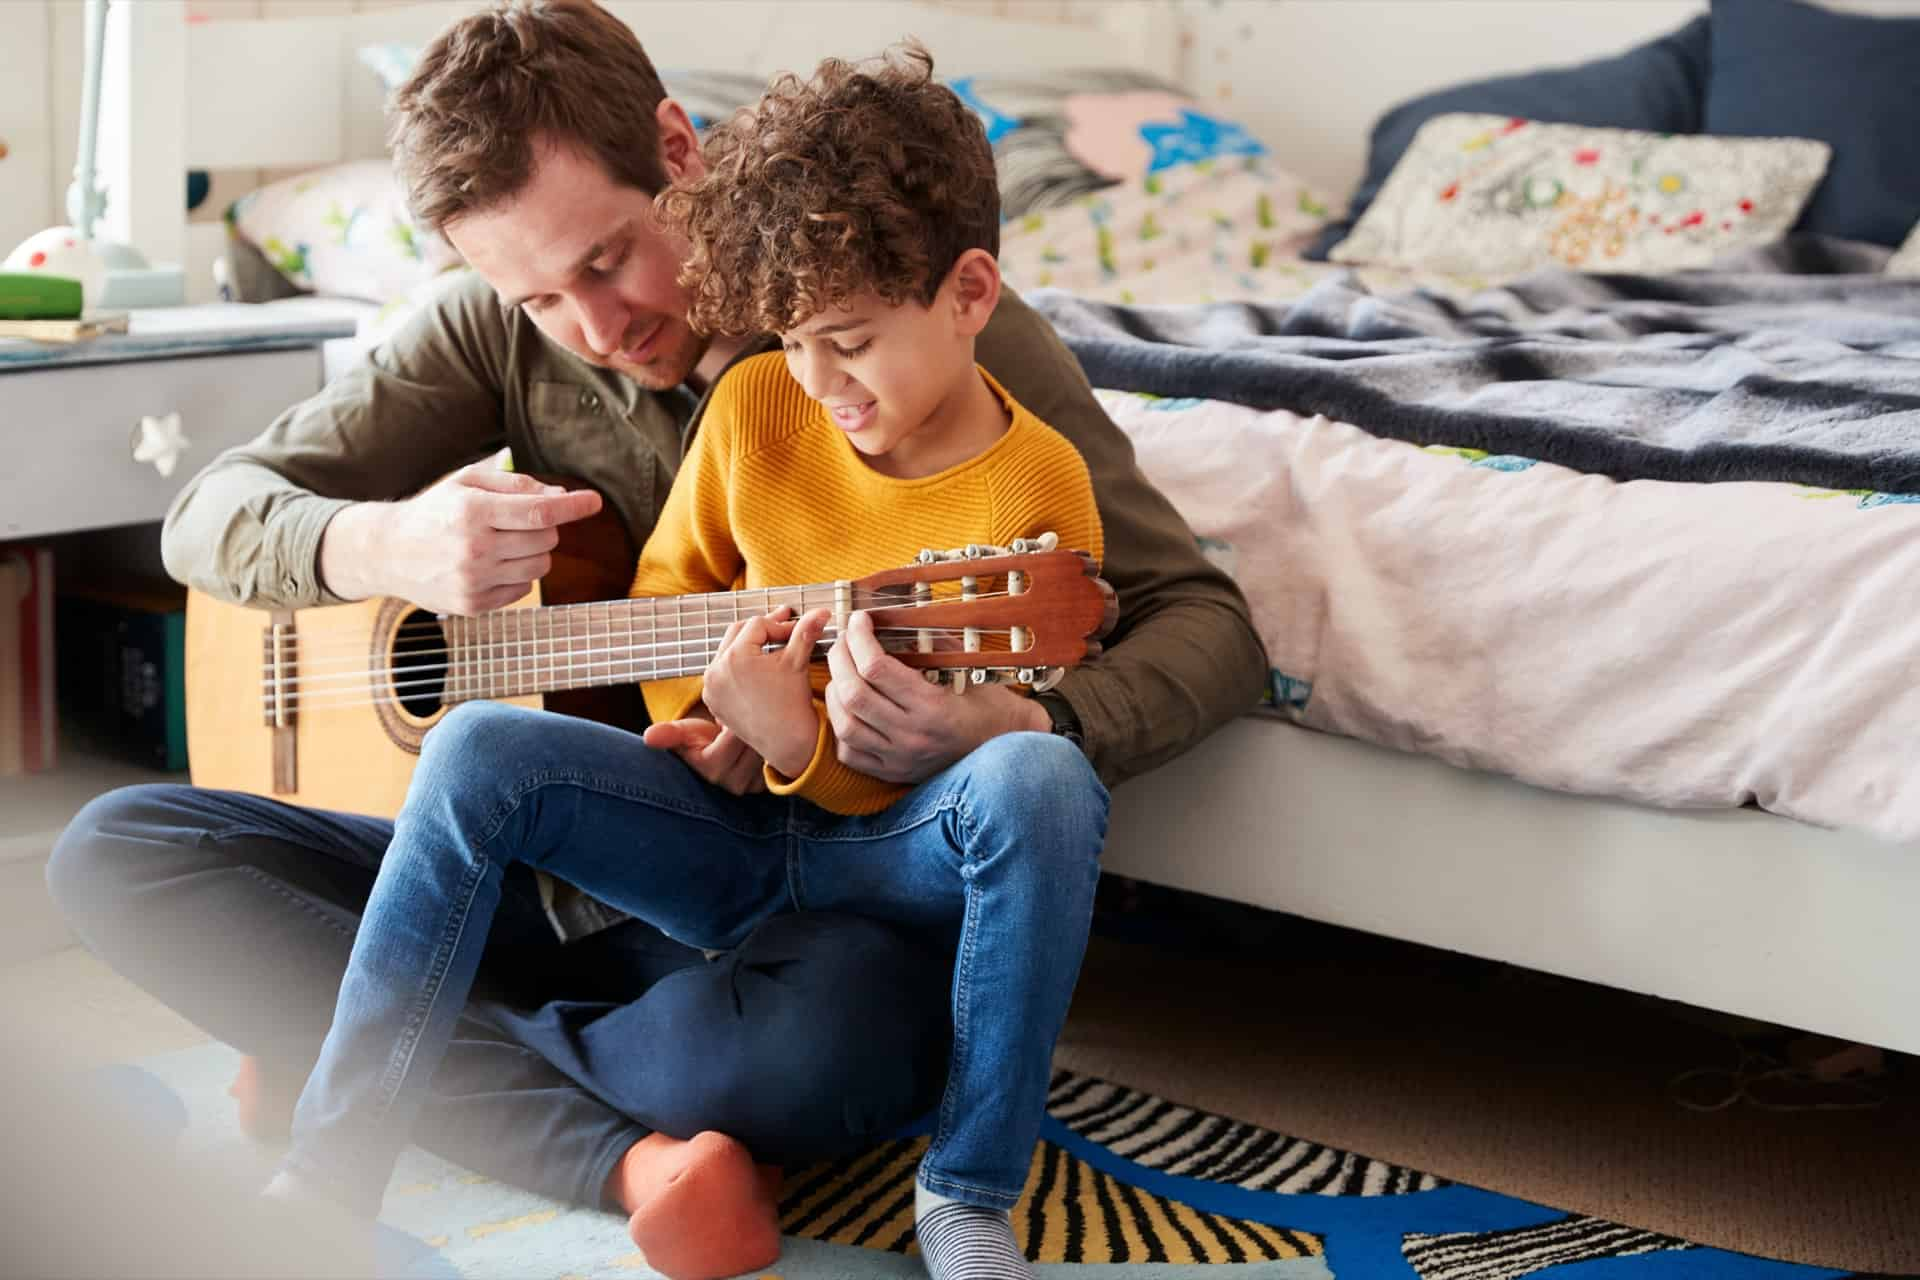 single father at home with son teaching him to NU3GXMK - 5 Boredom Busters to Keep the Family Entertained At Home